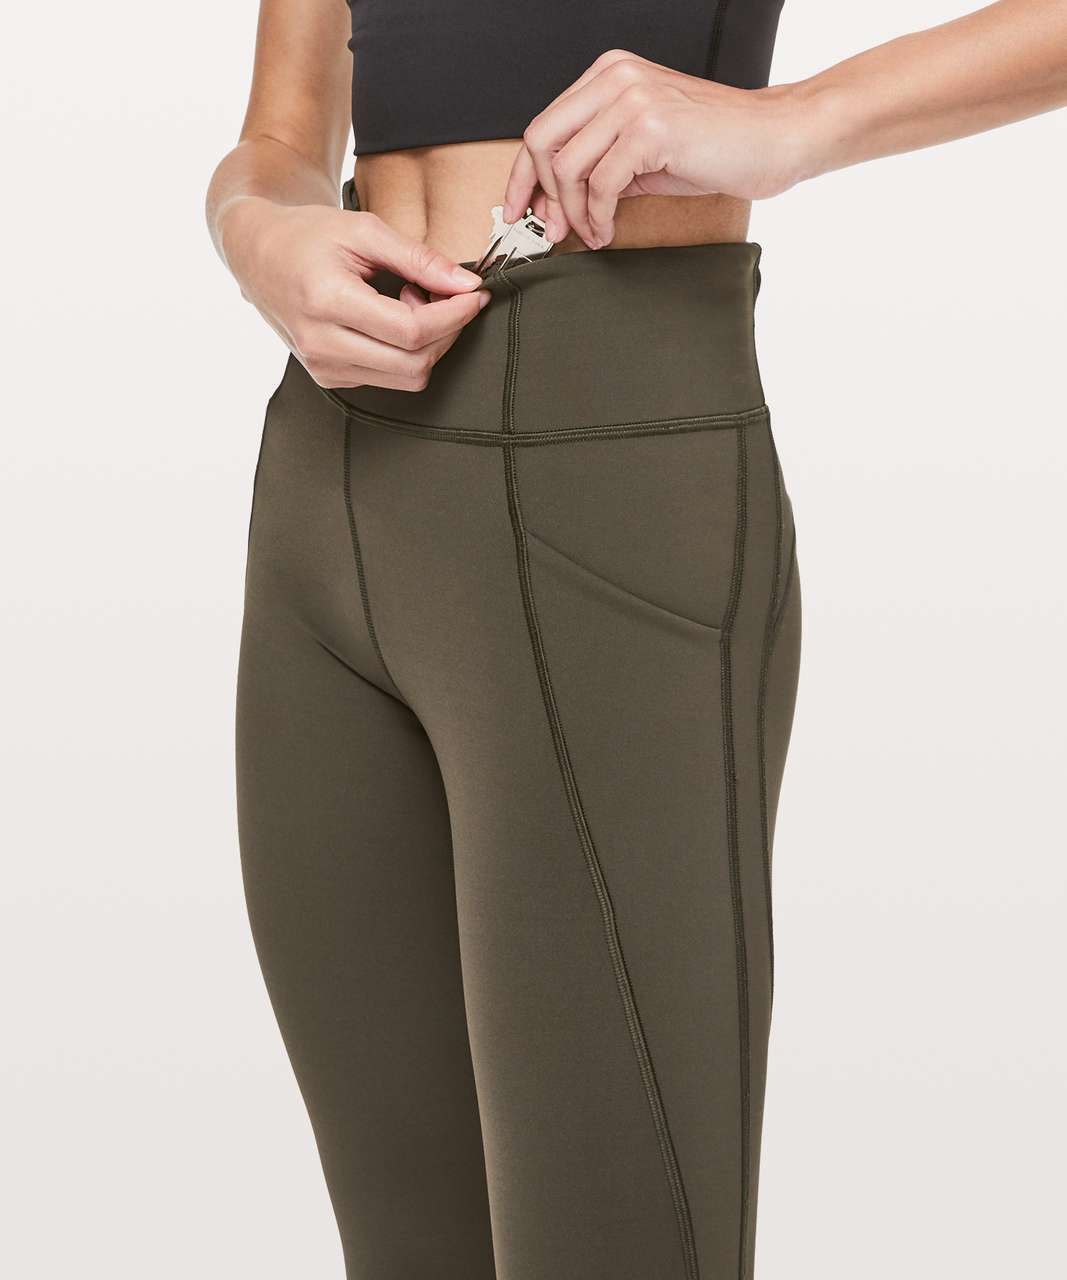 "Lululemon Time To Sweat Crop *23"" - Dark Olive"